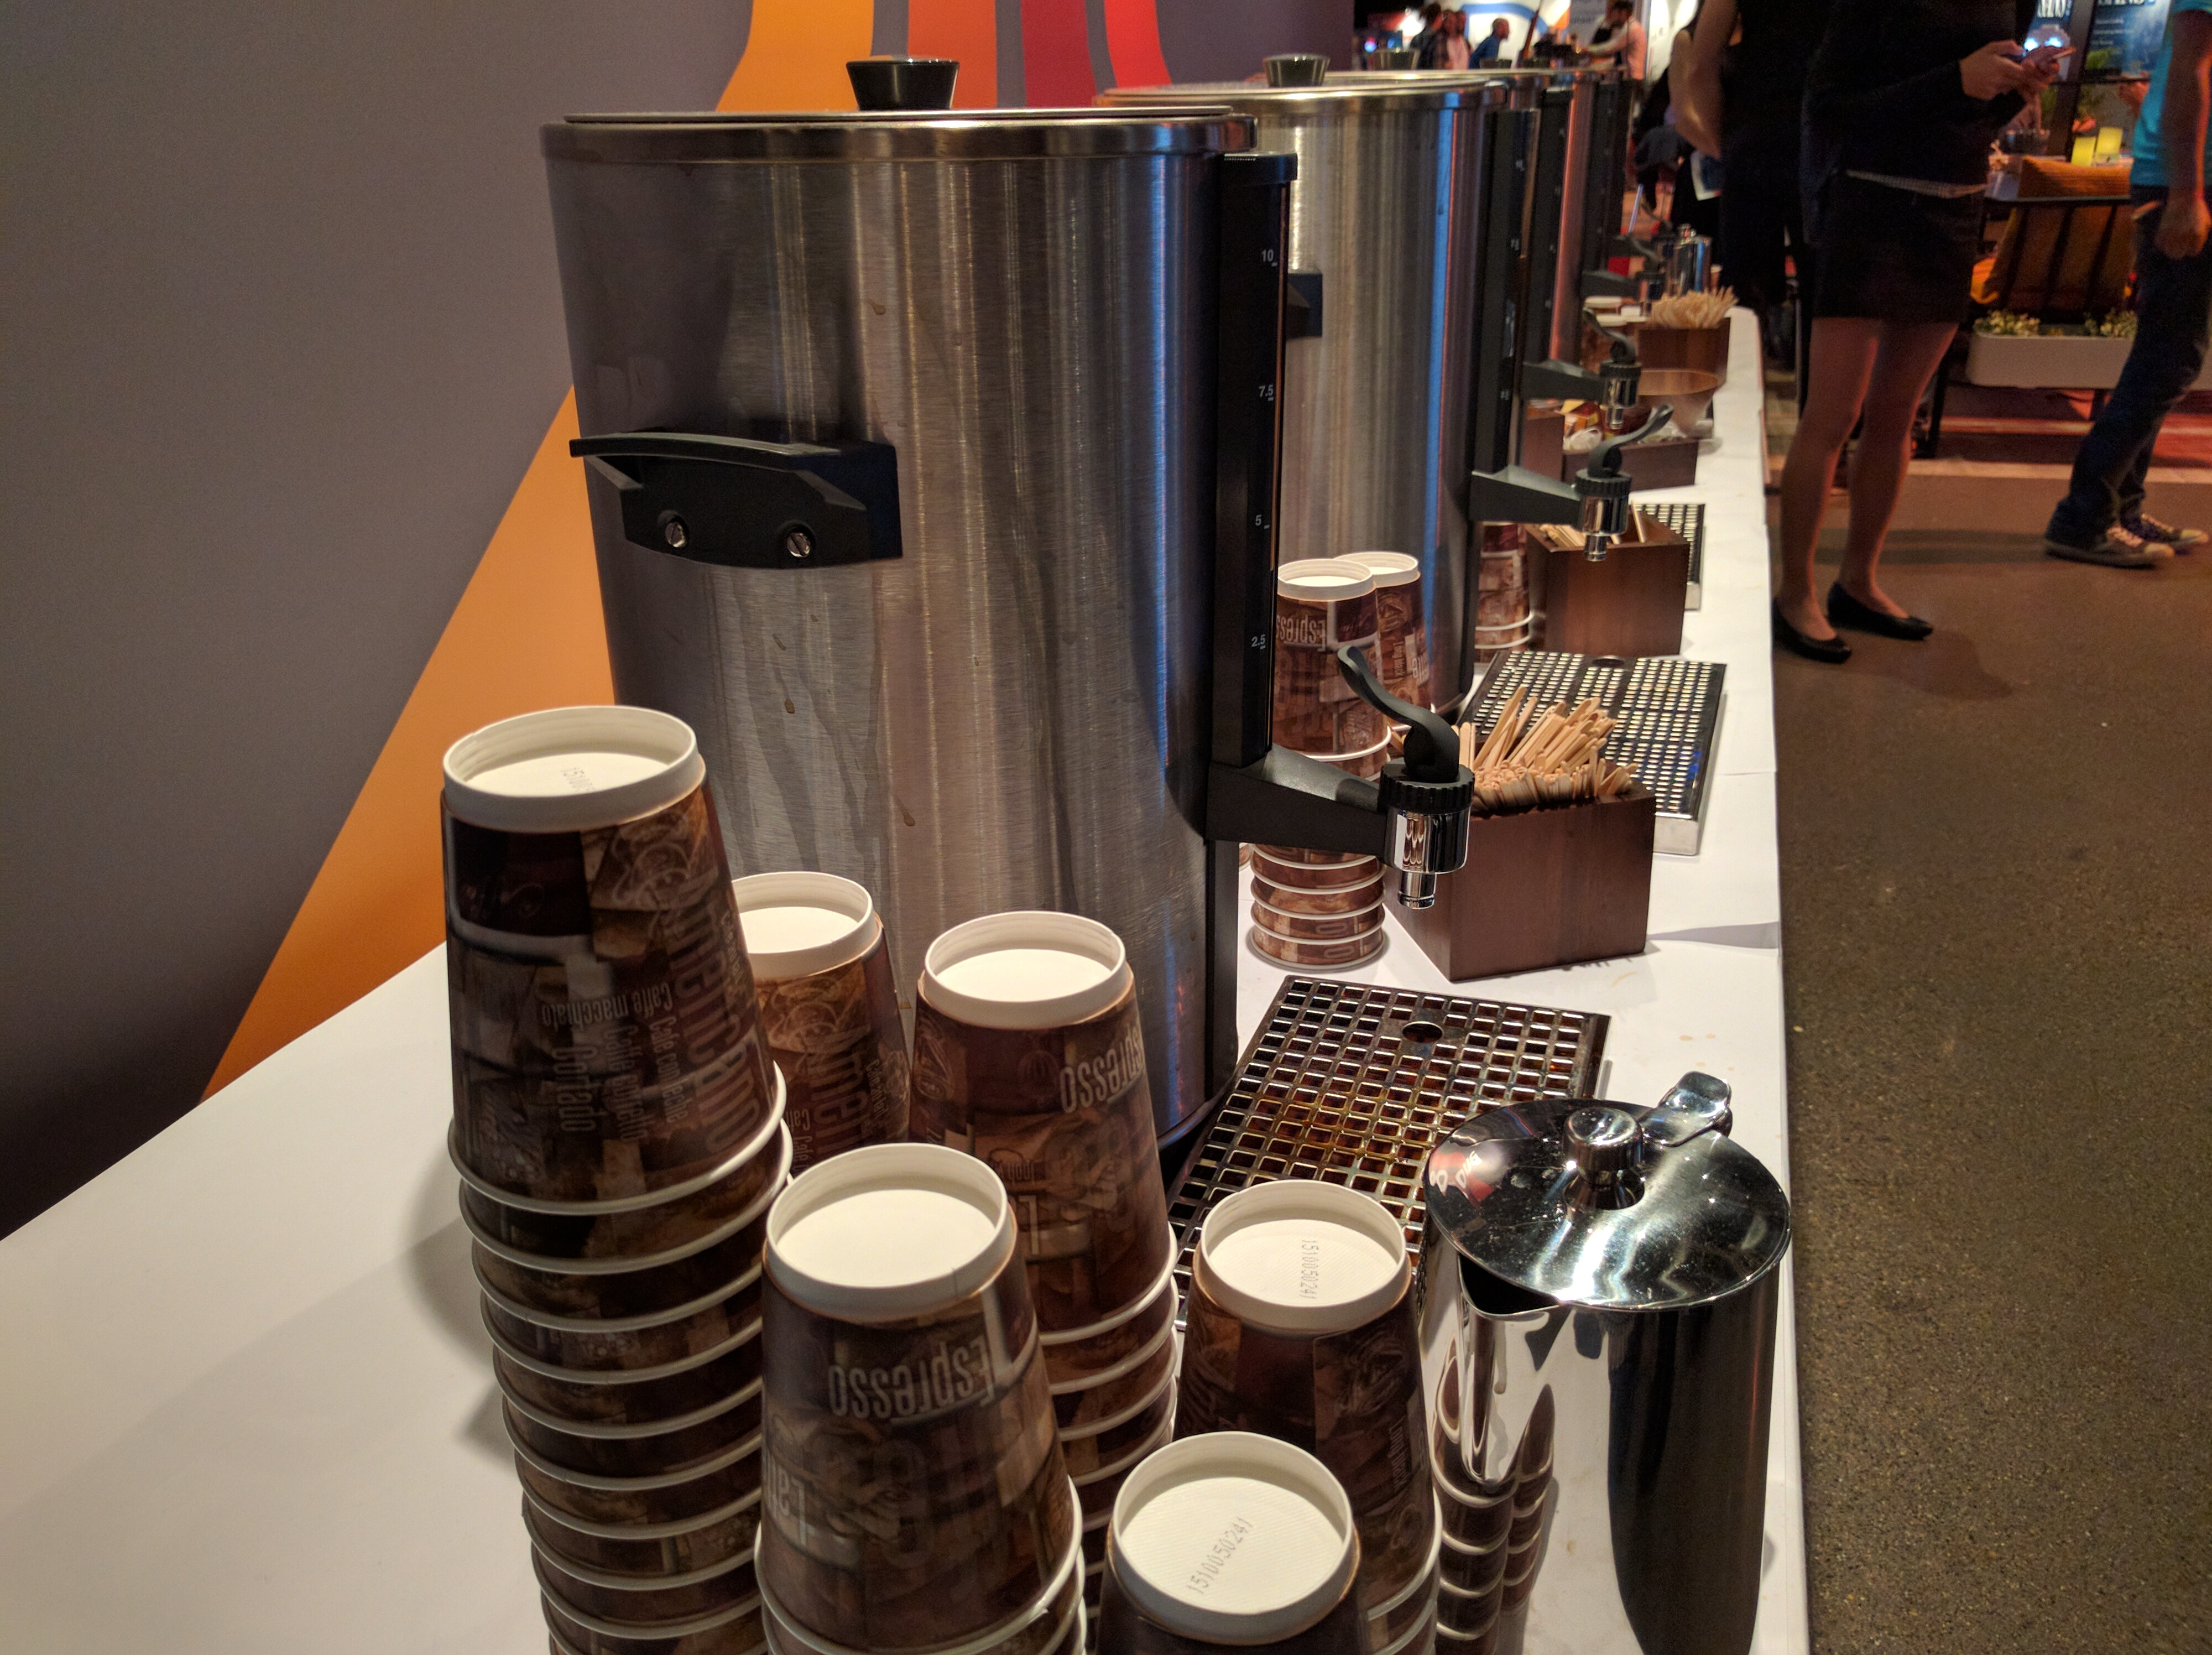 Plenty of caffeine for the developers